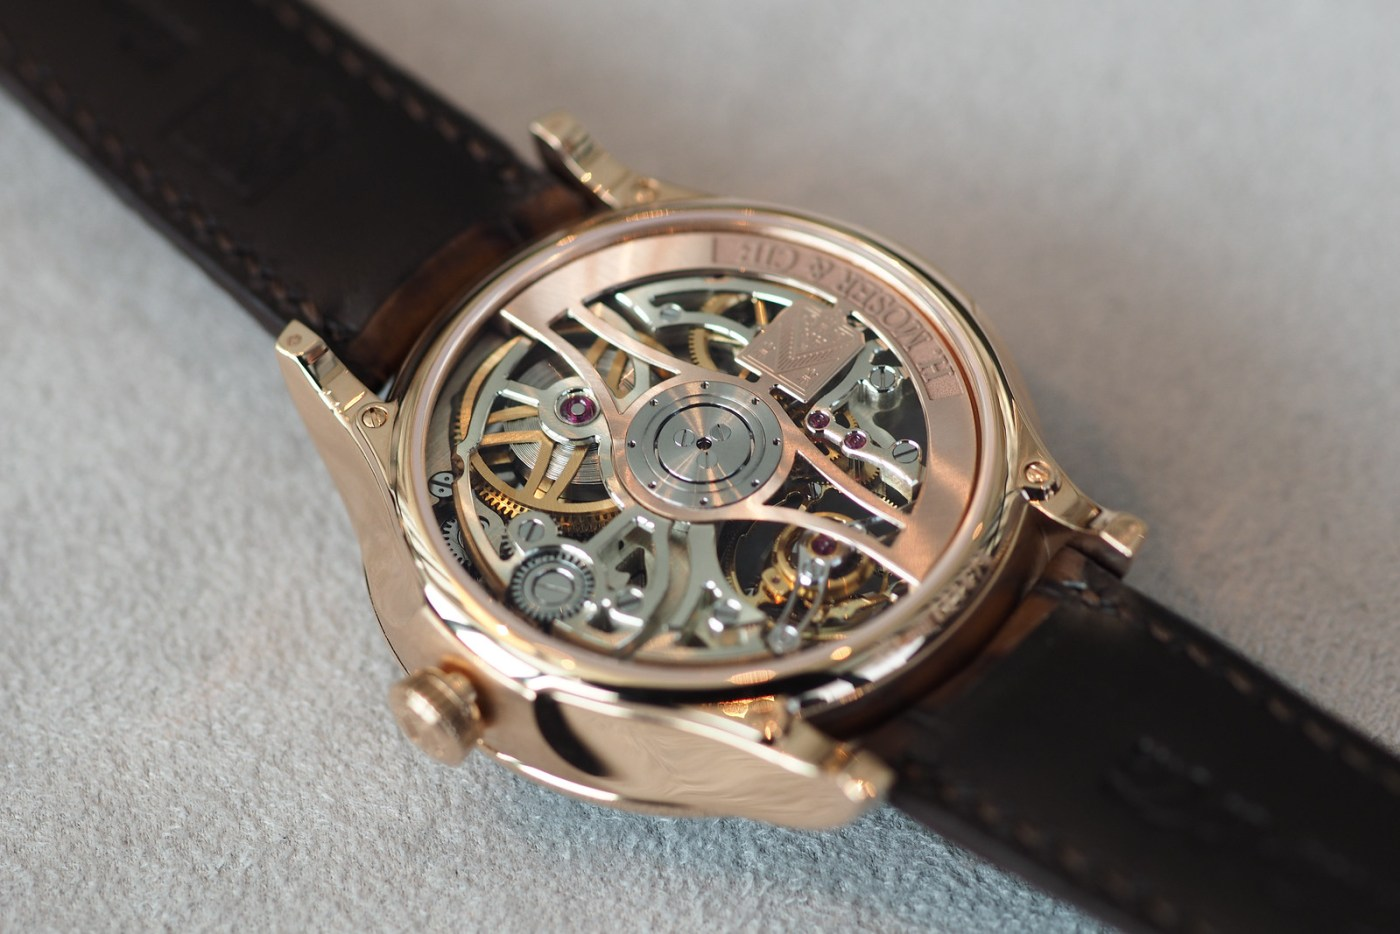 Moser Venturer Tourbillon Skeleton